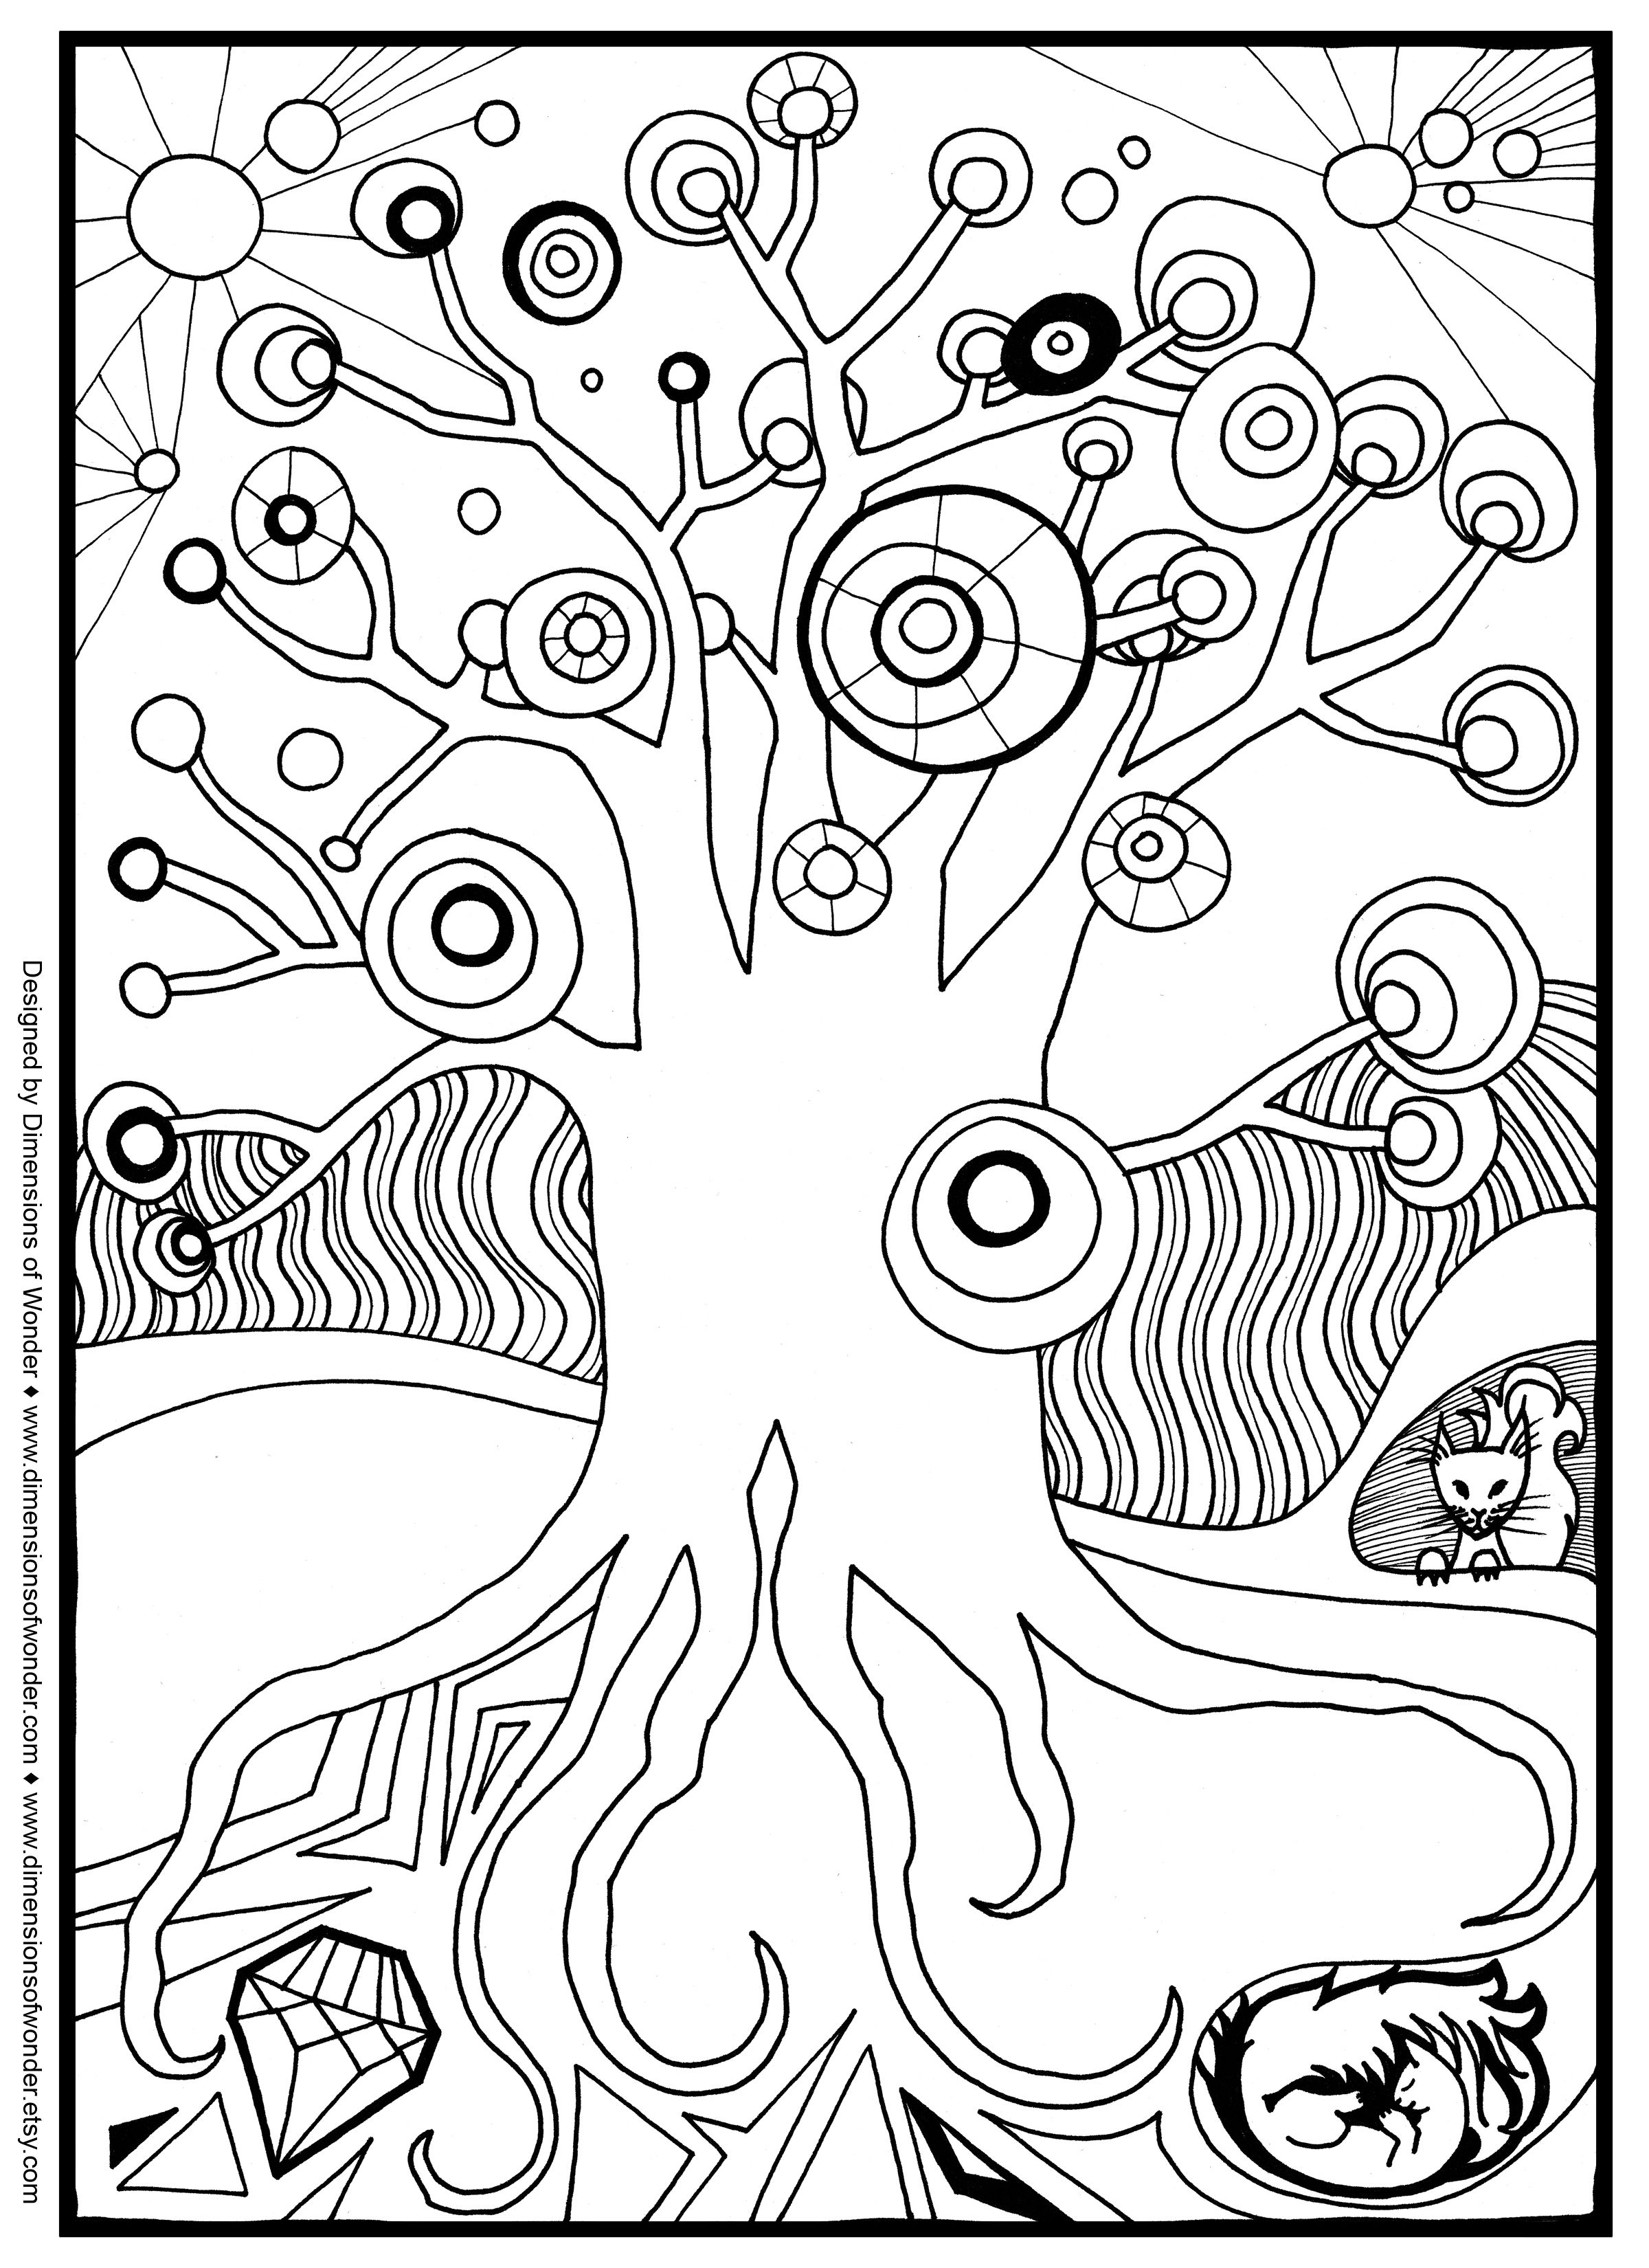 Coloring pages for adults for free - Coloring Pages For Adults Only Christmas Coloring Pages Printables For Free By Dimensions Of